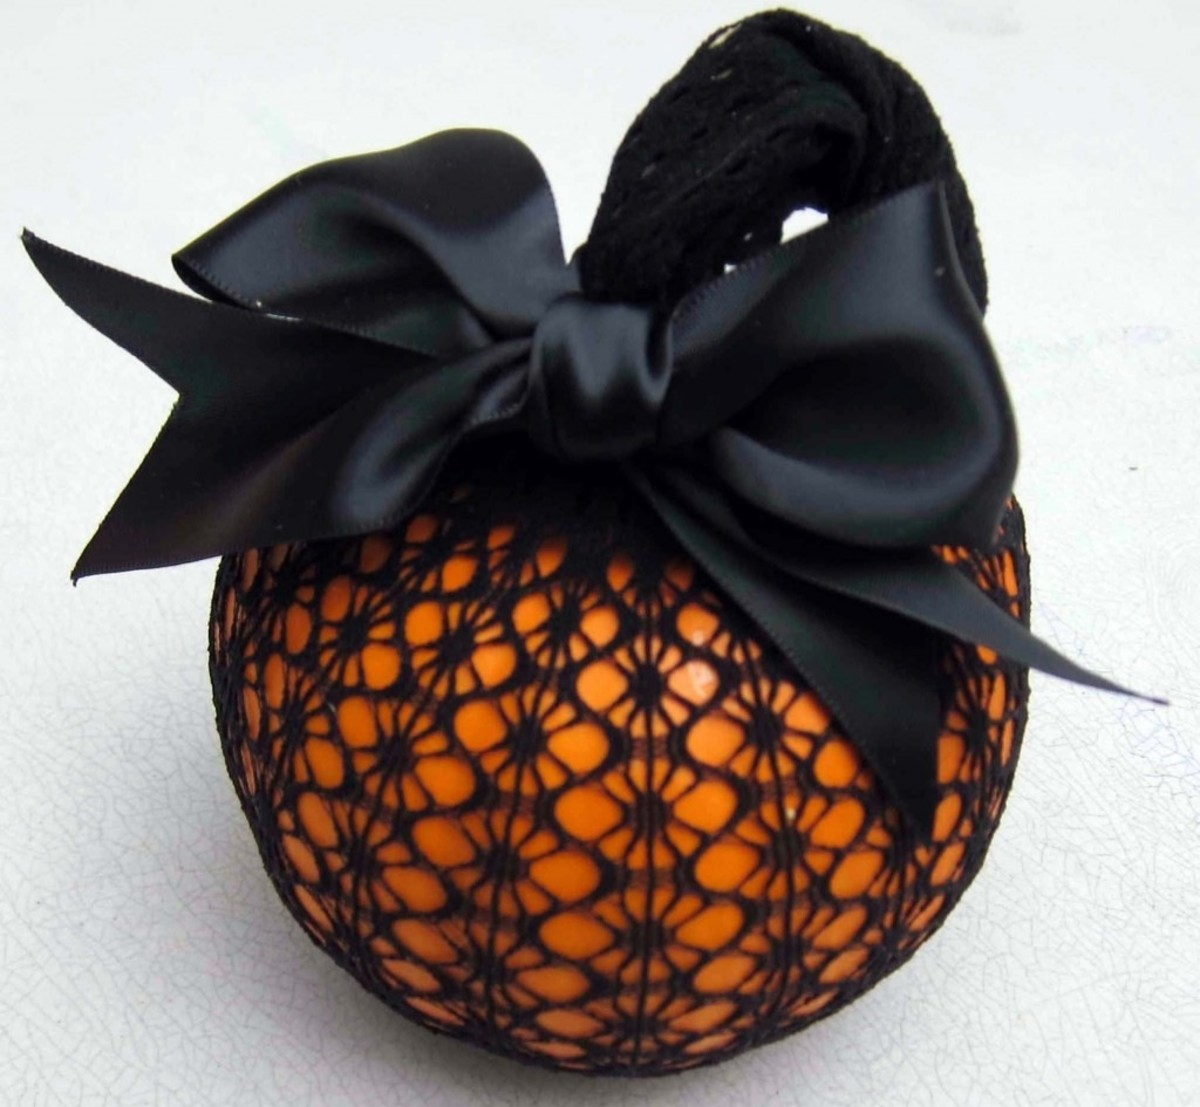 DIY Easy Pumpkin Decorating Ideas Lace Covered Pumpkins with a Bow